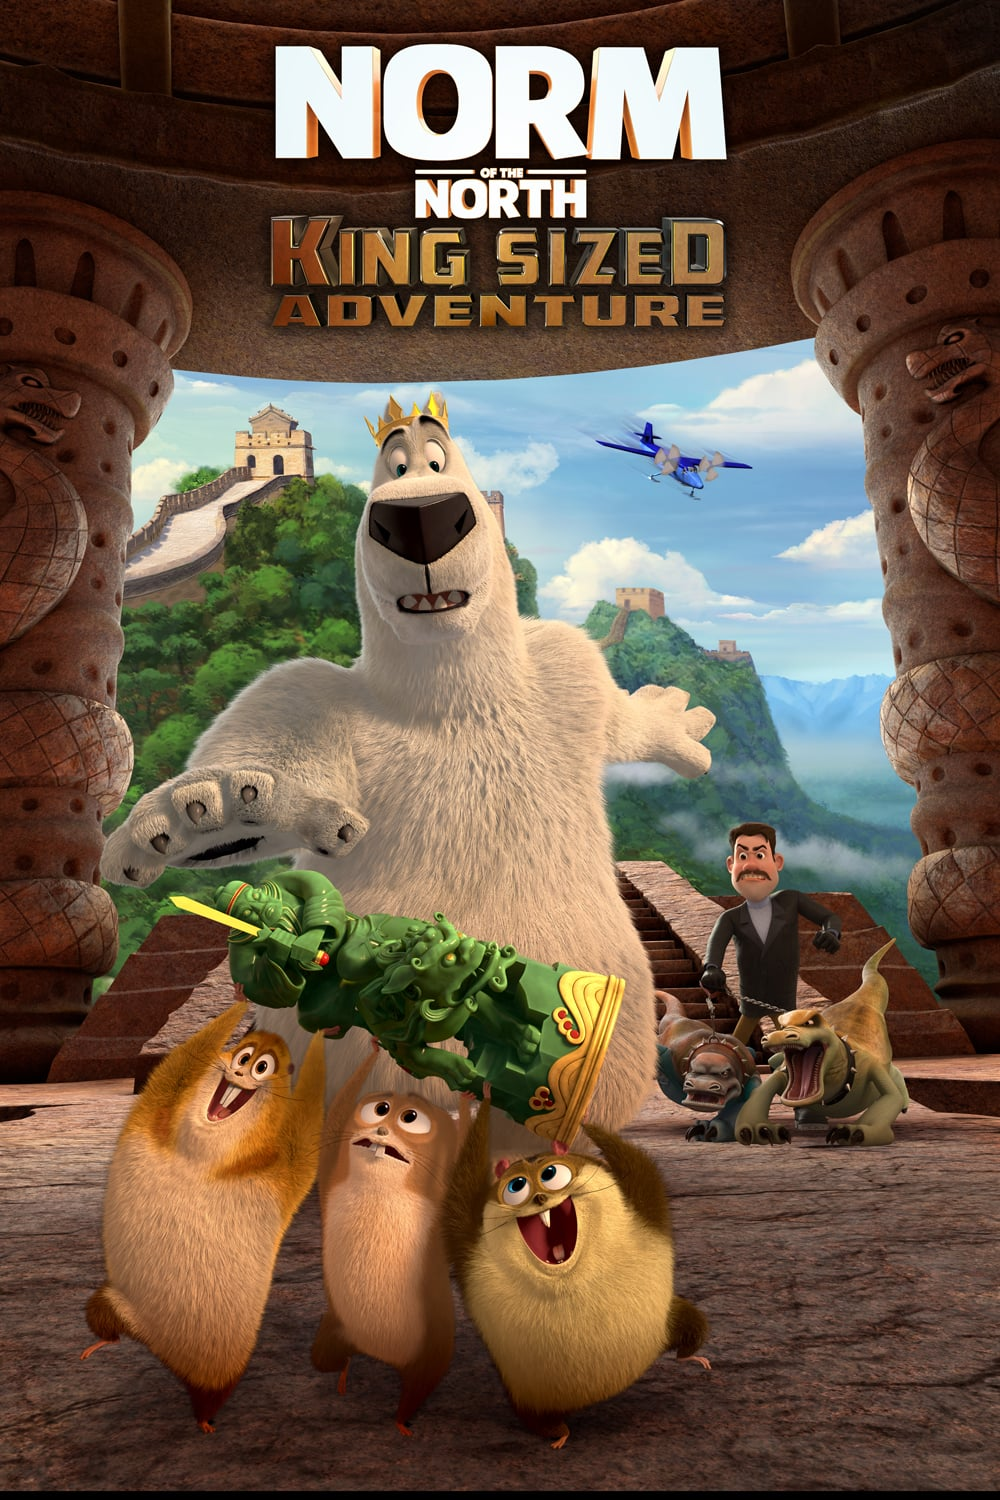 Regarder Norm of the North: King Sized Adventure en streaming gratuit